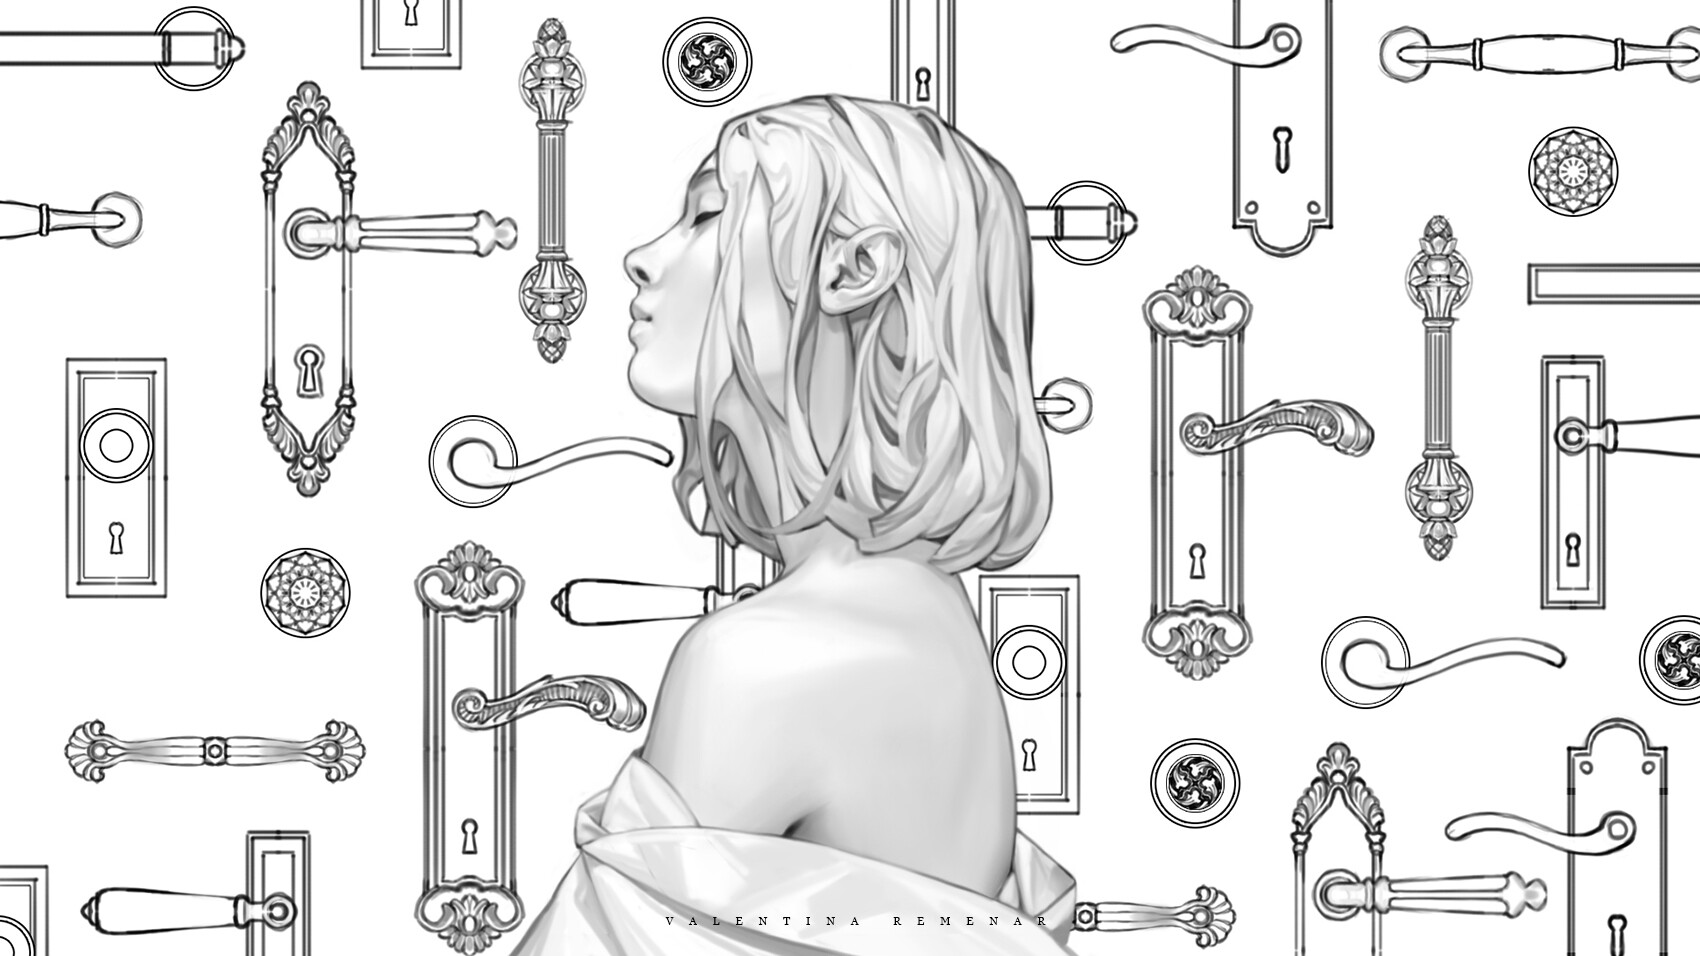 Valentina remenar key to opportunity by valentina remenar lineart